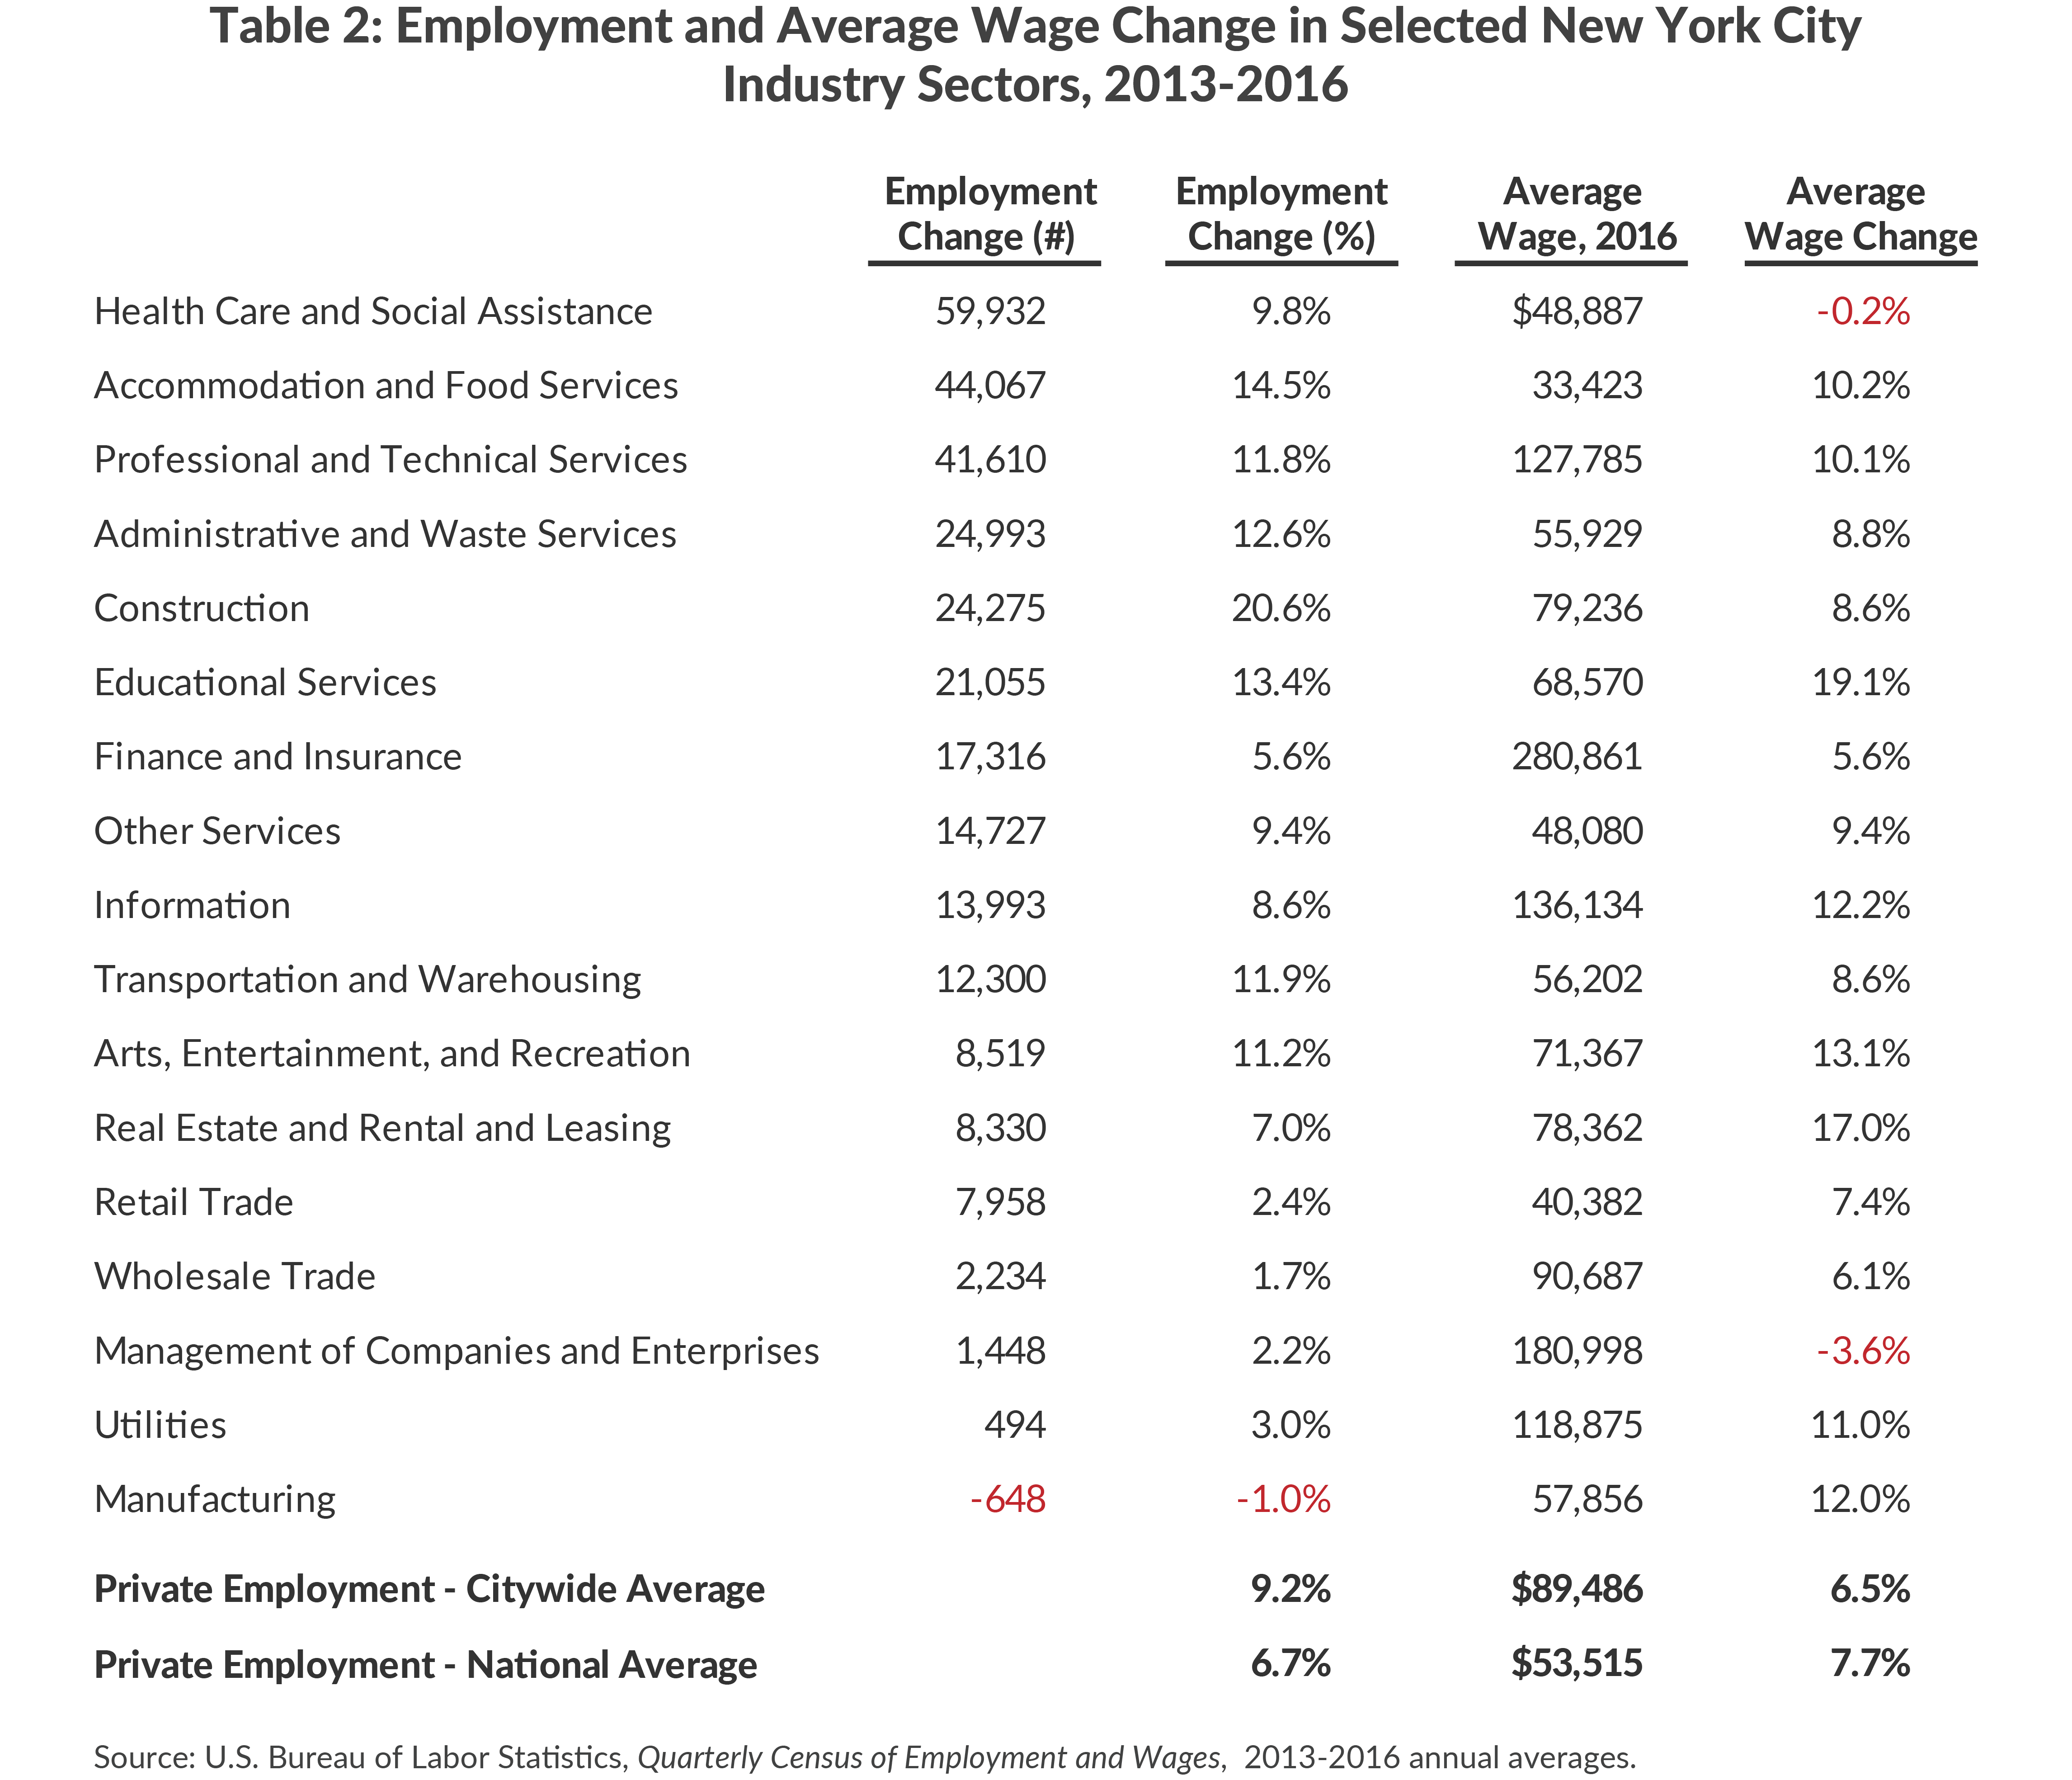 Employment and Average Wage Change in Selected New York City Industry Sectors